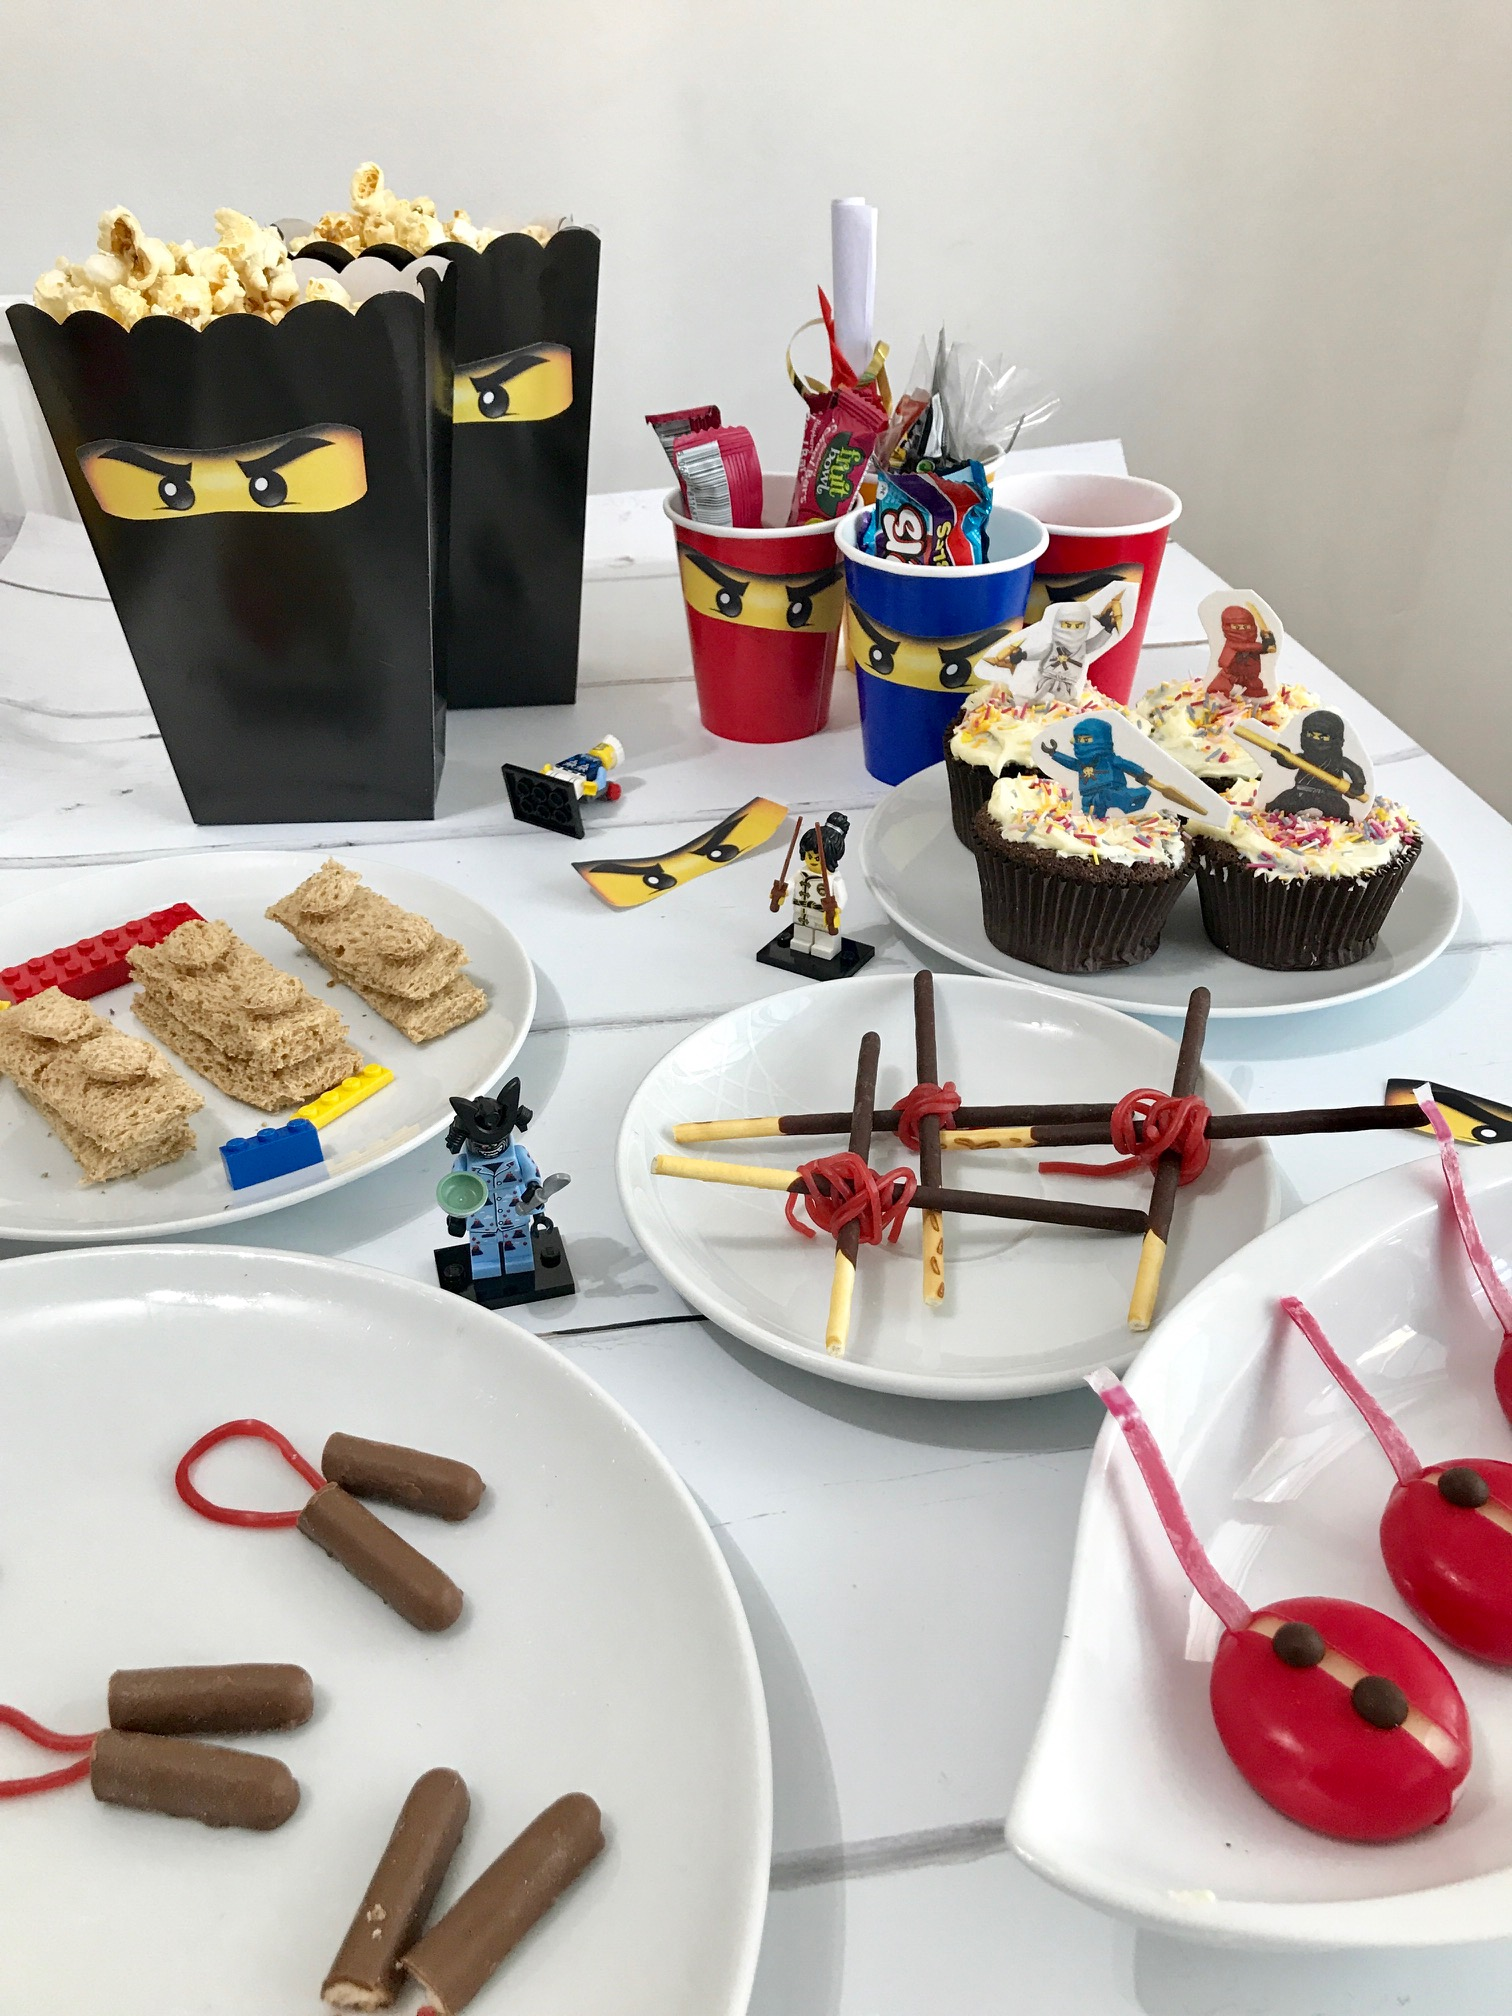 DIY Lego Ninjago Party Ideas including Lego Ninjago party bags, Ninjago party food, Ninjago party tea, How to make lego sandwiches, Lego ninjago party ideas